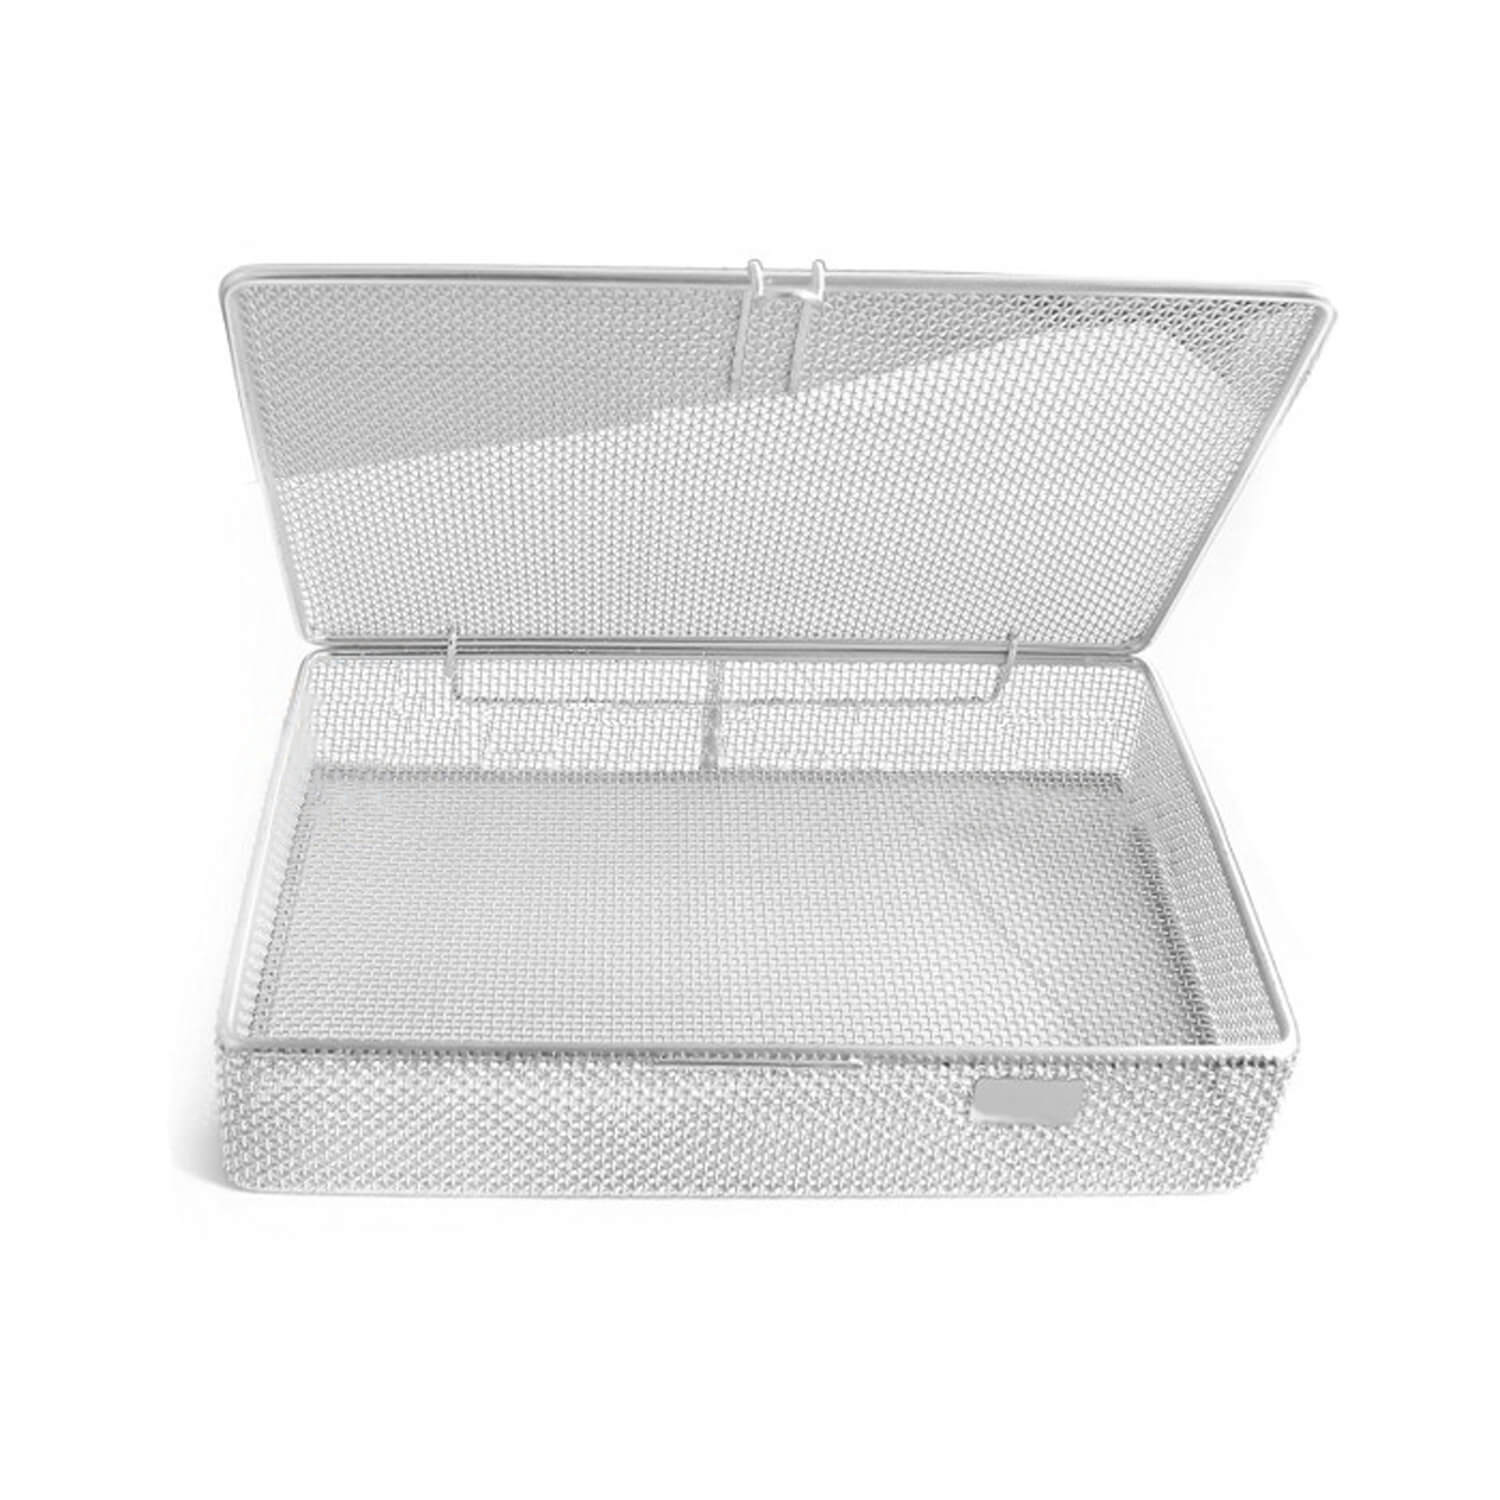 "Sterilization Cassette Tray 9"" X6.25"" X1.5"" Perforated Mesh Box Dn-313"